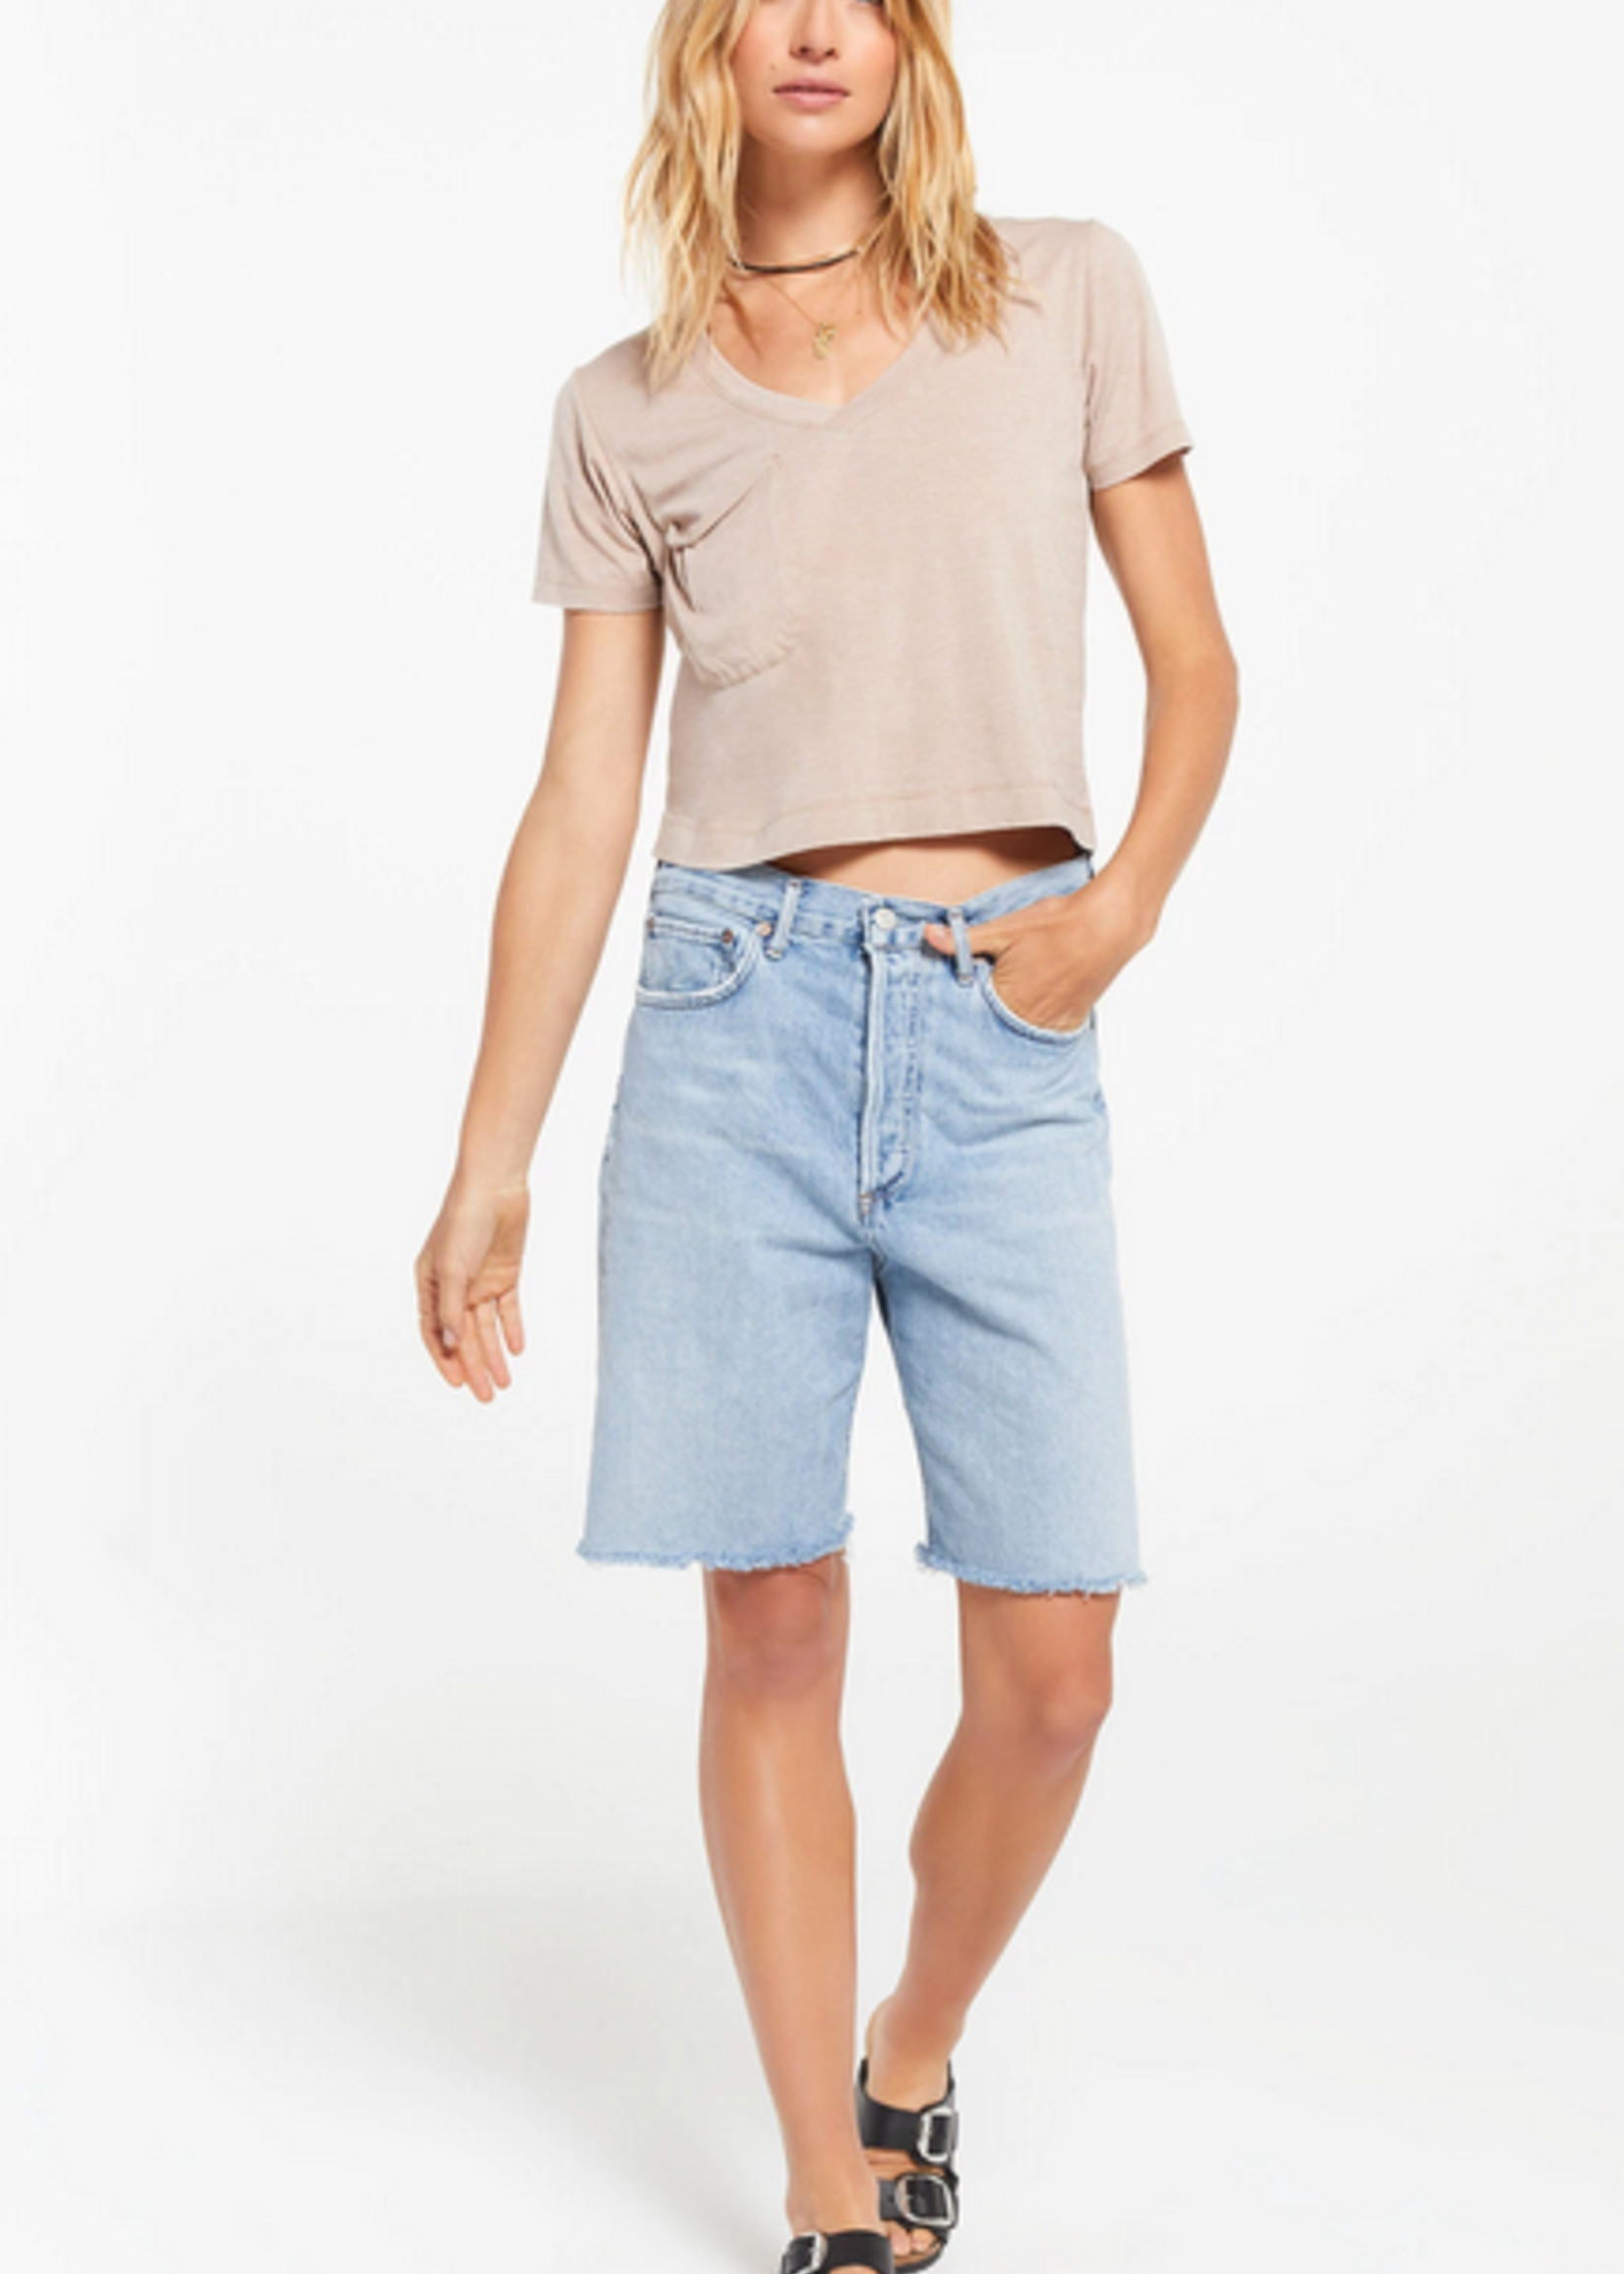 Z SUPPLY Z SUPPLY THE CLASSIC SKIMMER TEE TAUPE